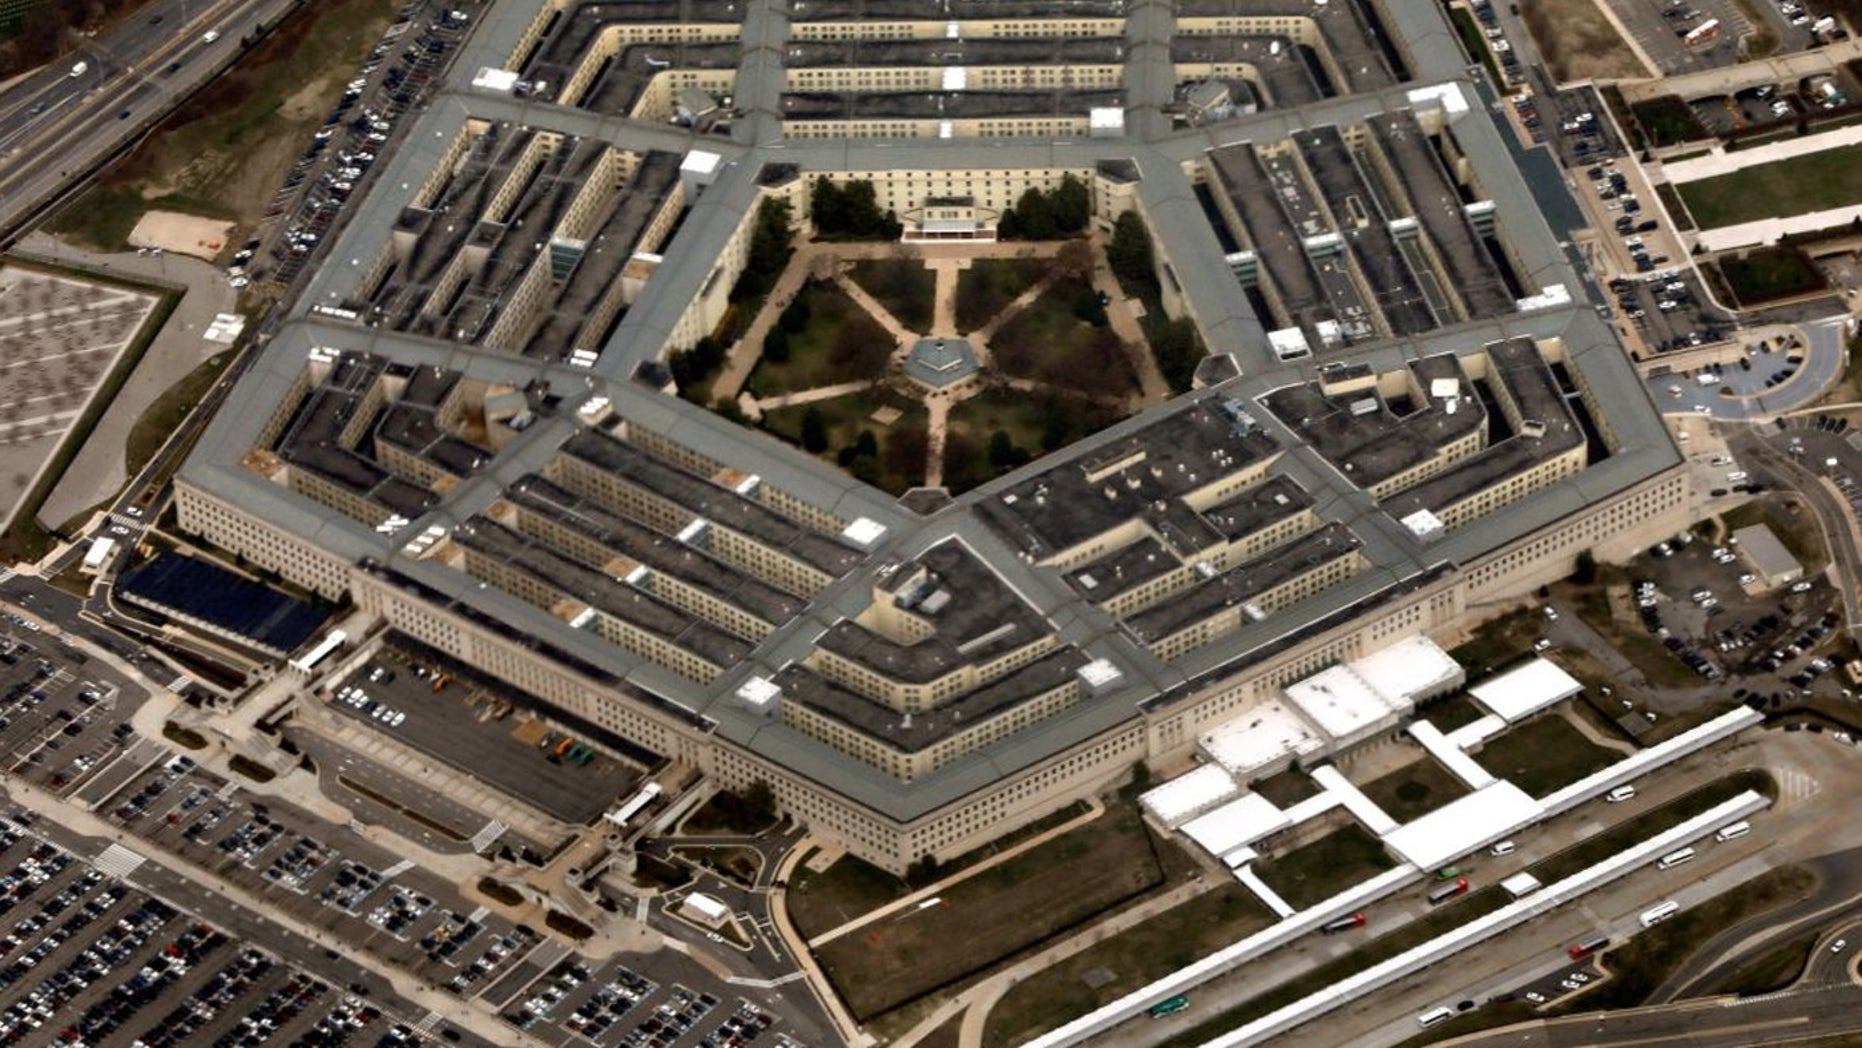 The Pentagon hopes to use cloud computing to harness advanced technologies for the country's military.